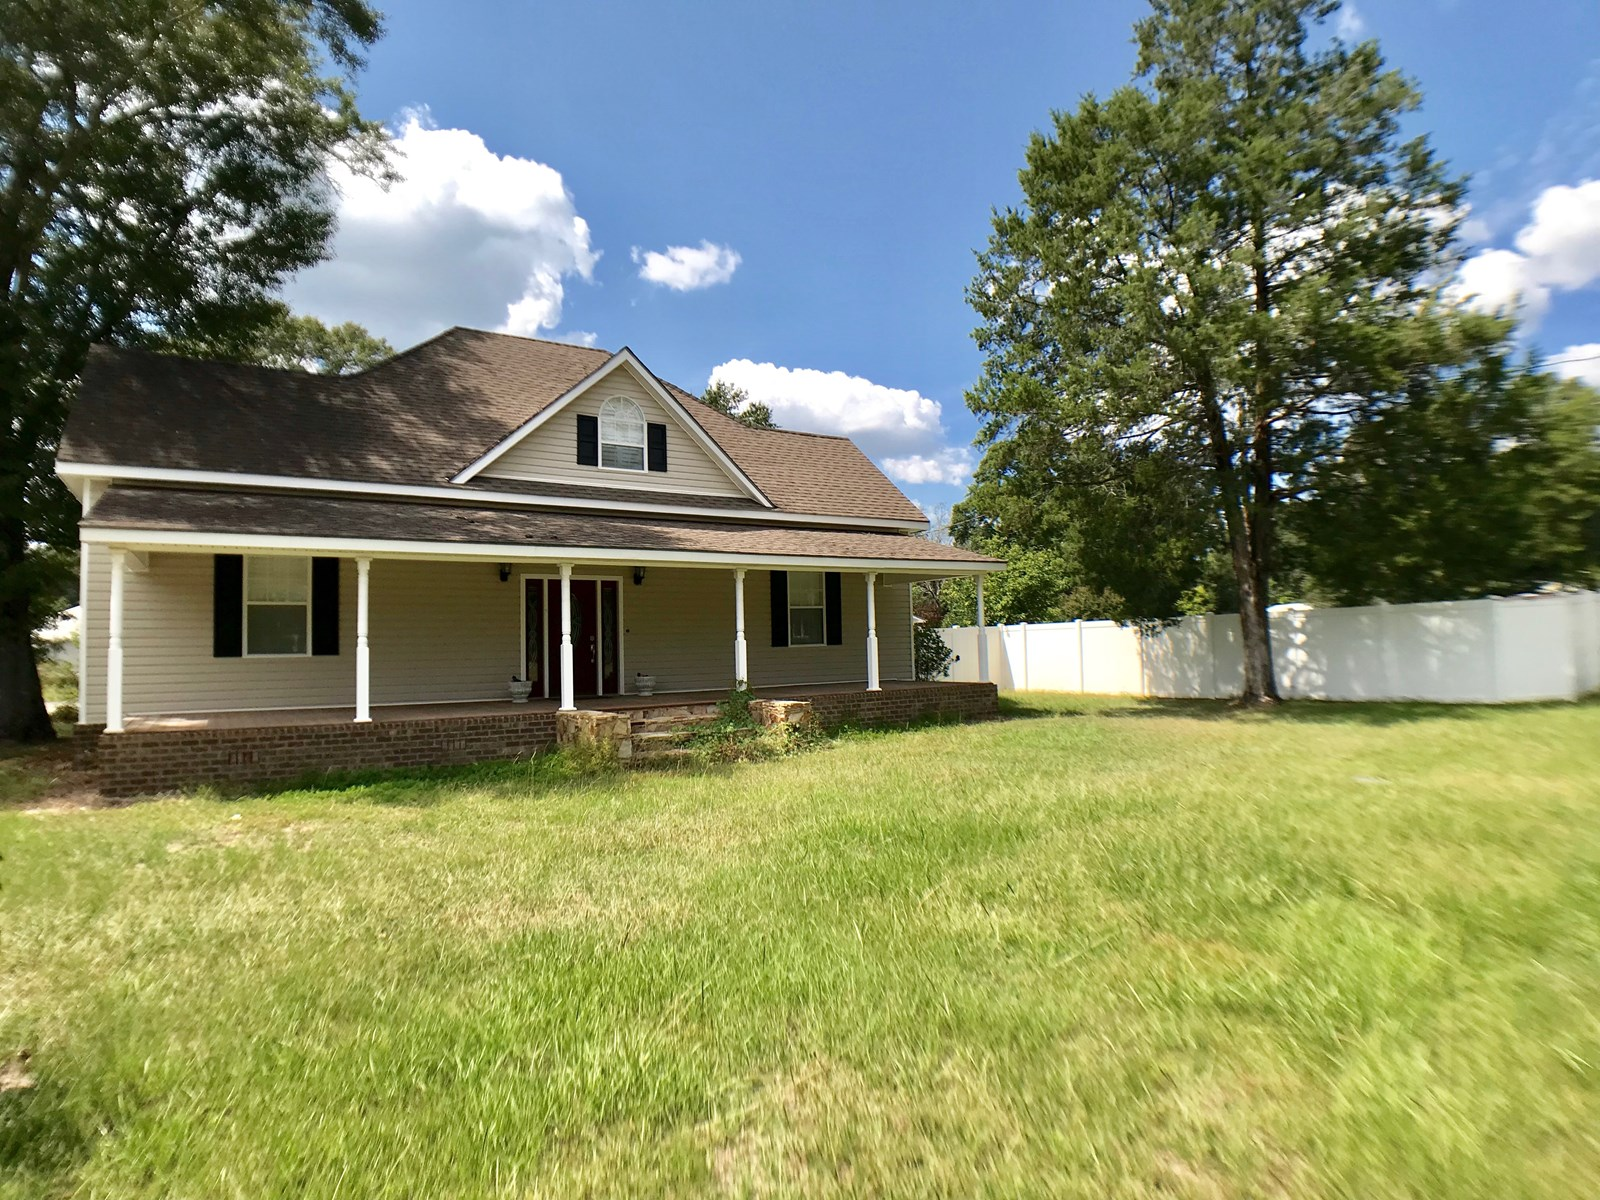 4B-4B Home for sale on Live Oak St, Geneva, Alabama